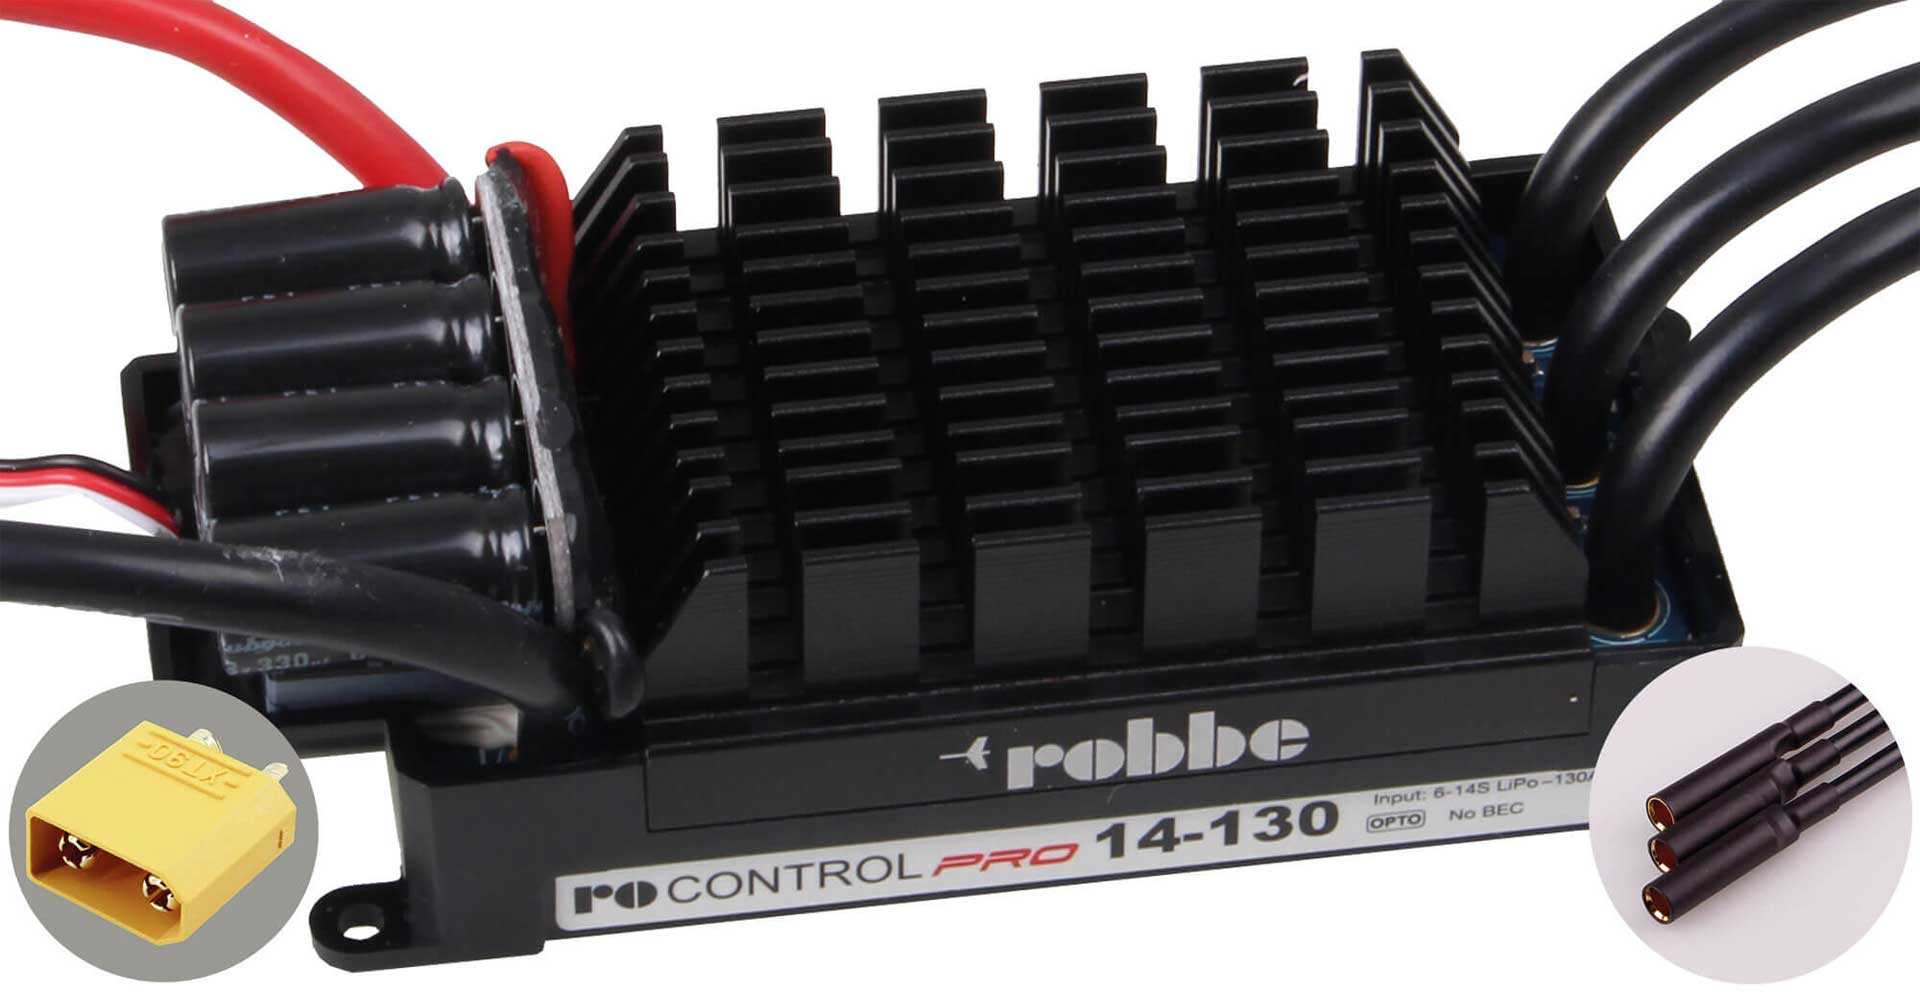 ROBBE RO-CONTROL PR0 14-130 6-14S -130(160)A BRUSHLESS CONTROLLER OPTO